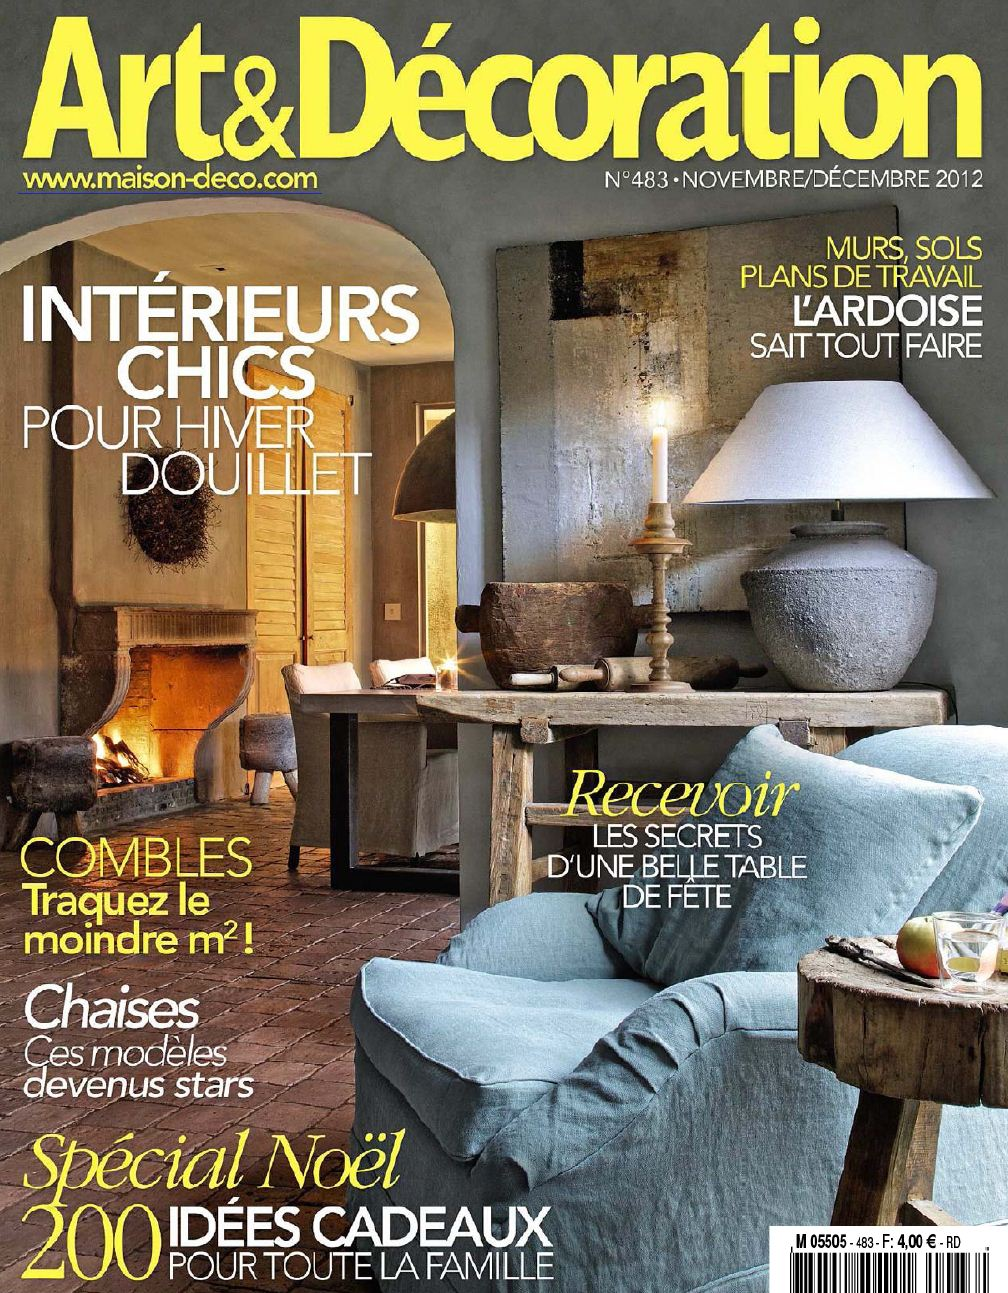 Un int rieur moderne des id es dans un magazine d co for Magazine de decoration interieure gratuit